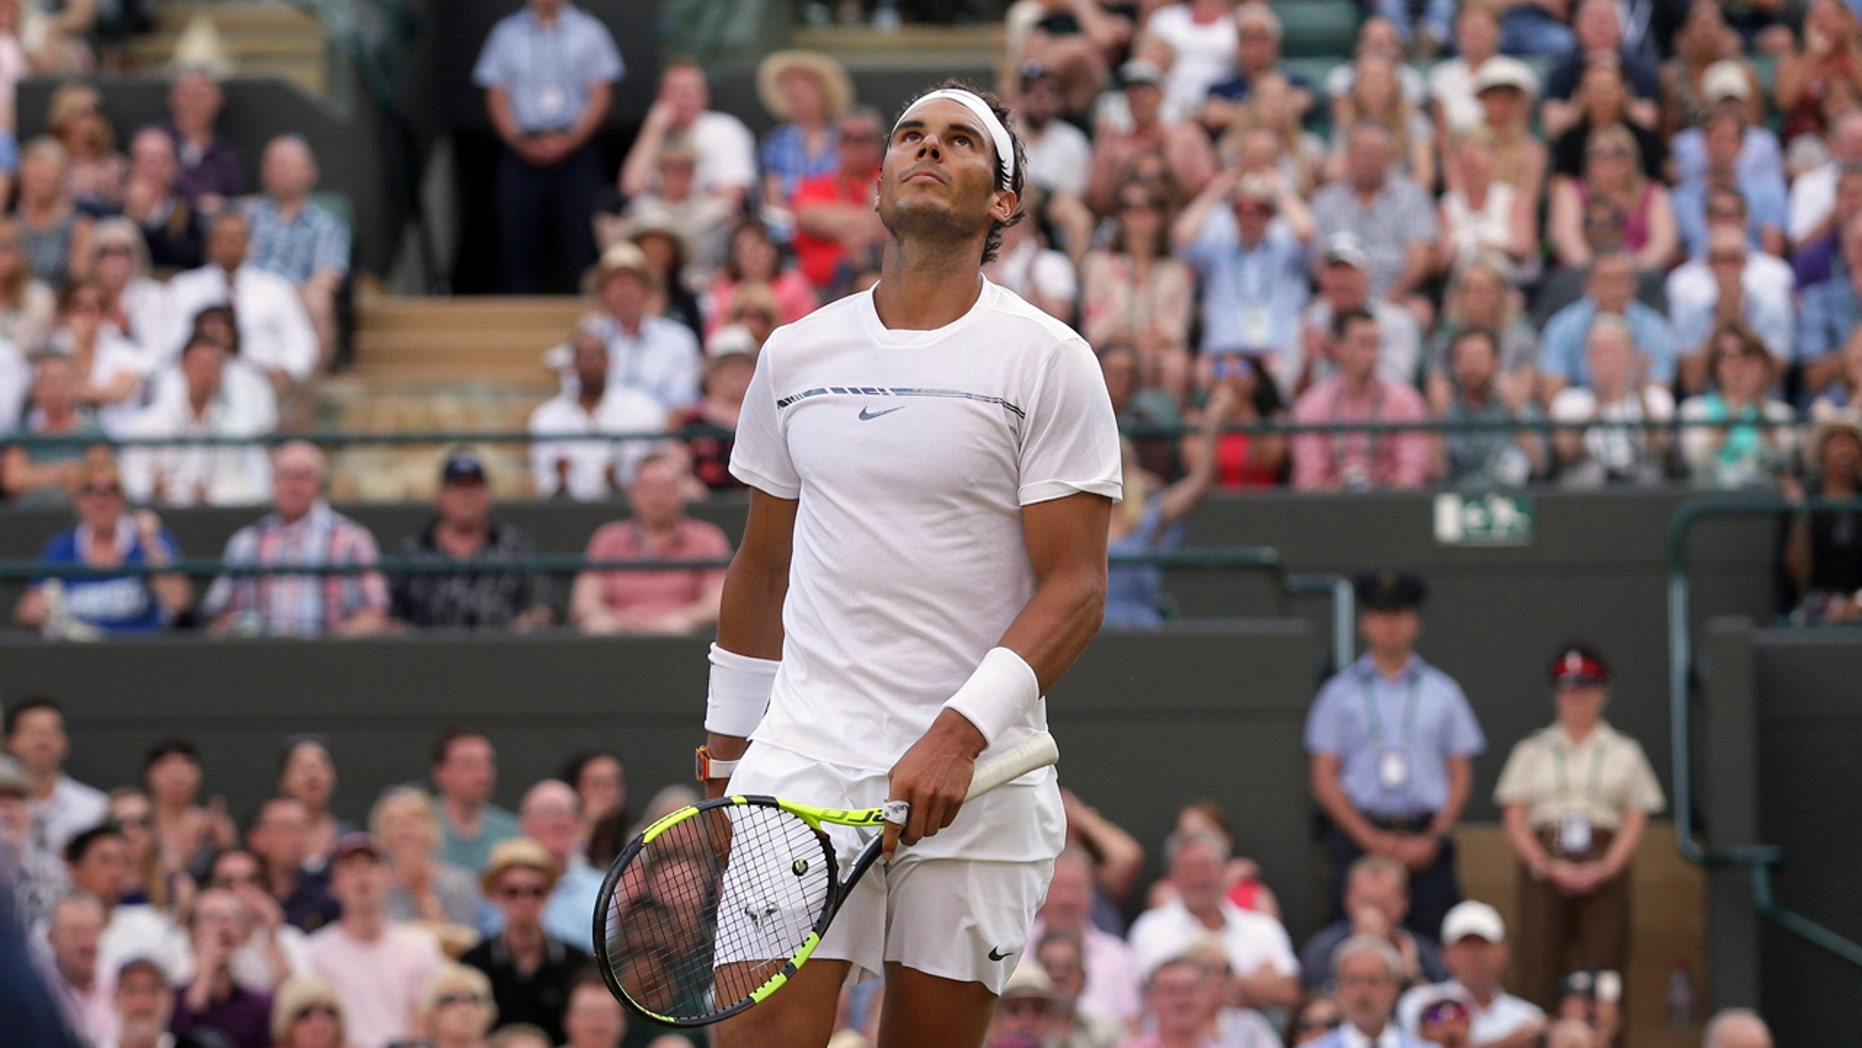 Rafael Nadal looks up during his Round of 16 match against Gilles Muller at Wimbledon Monday